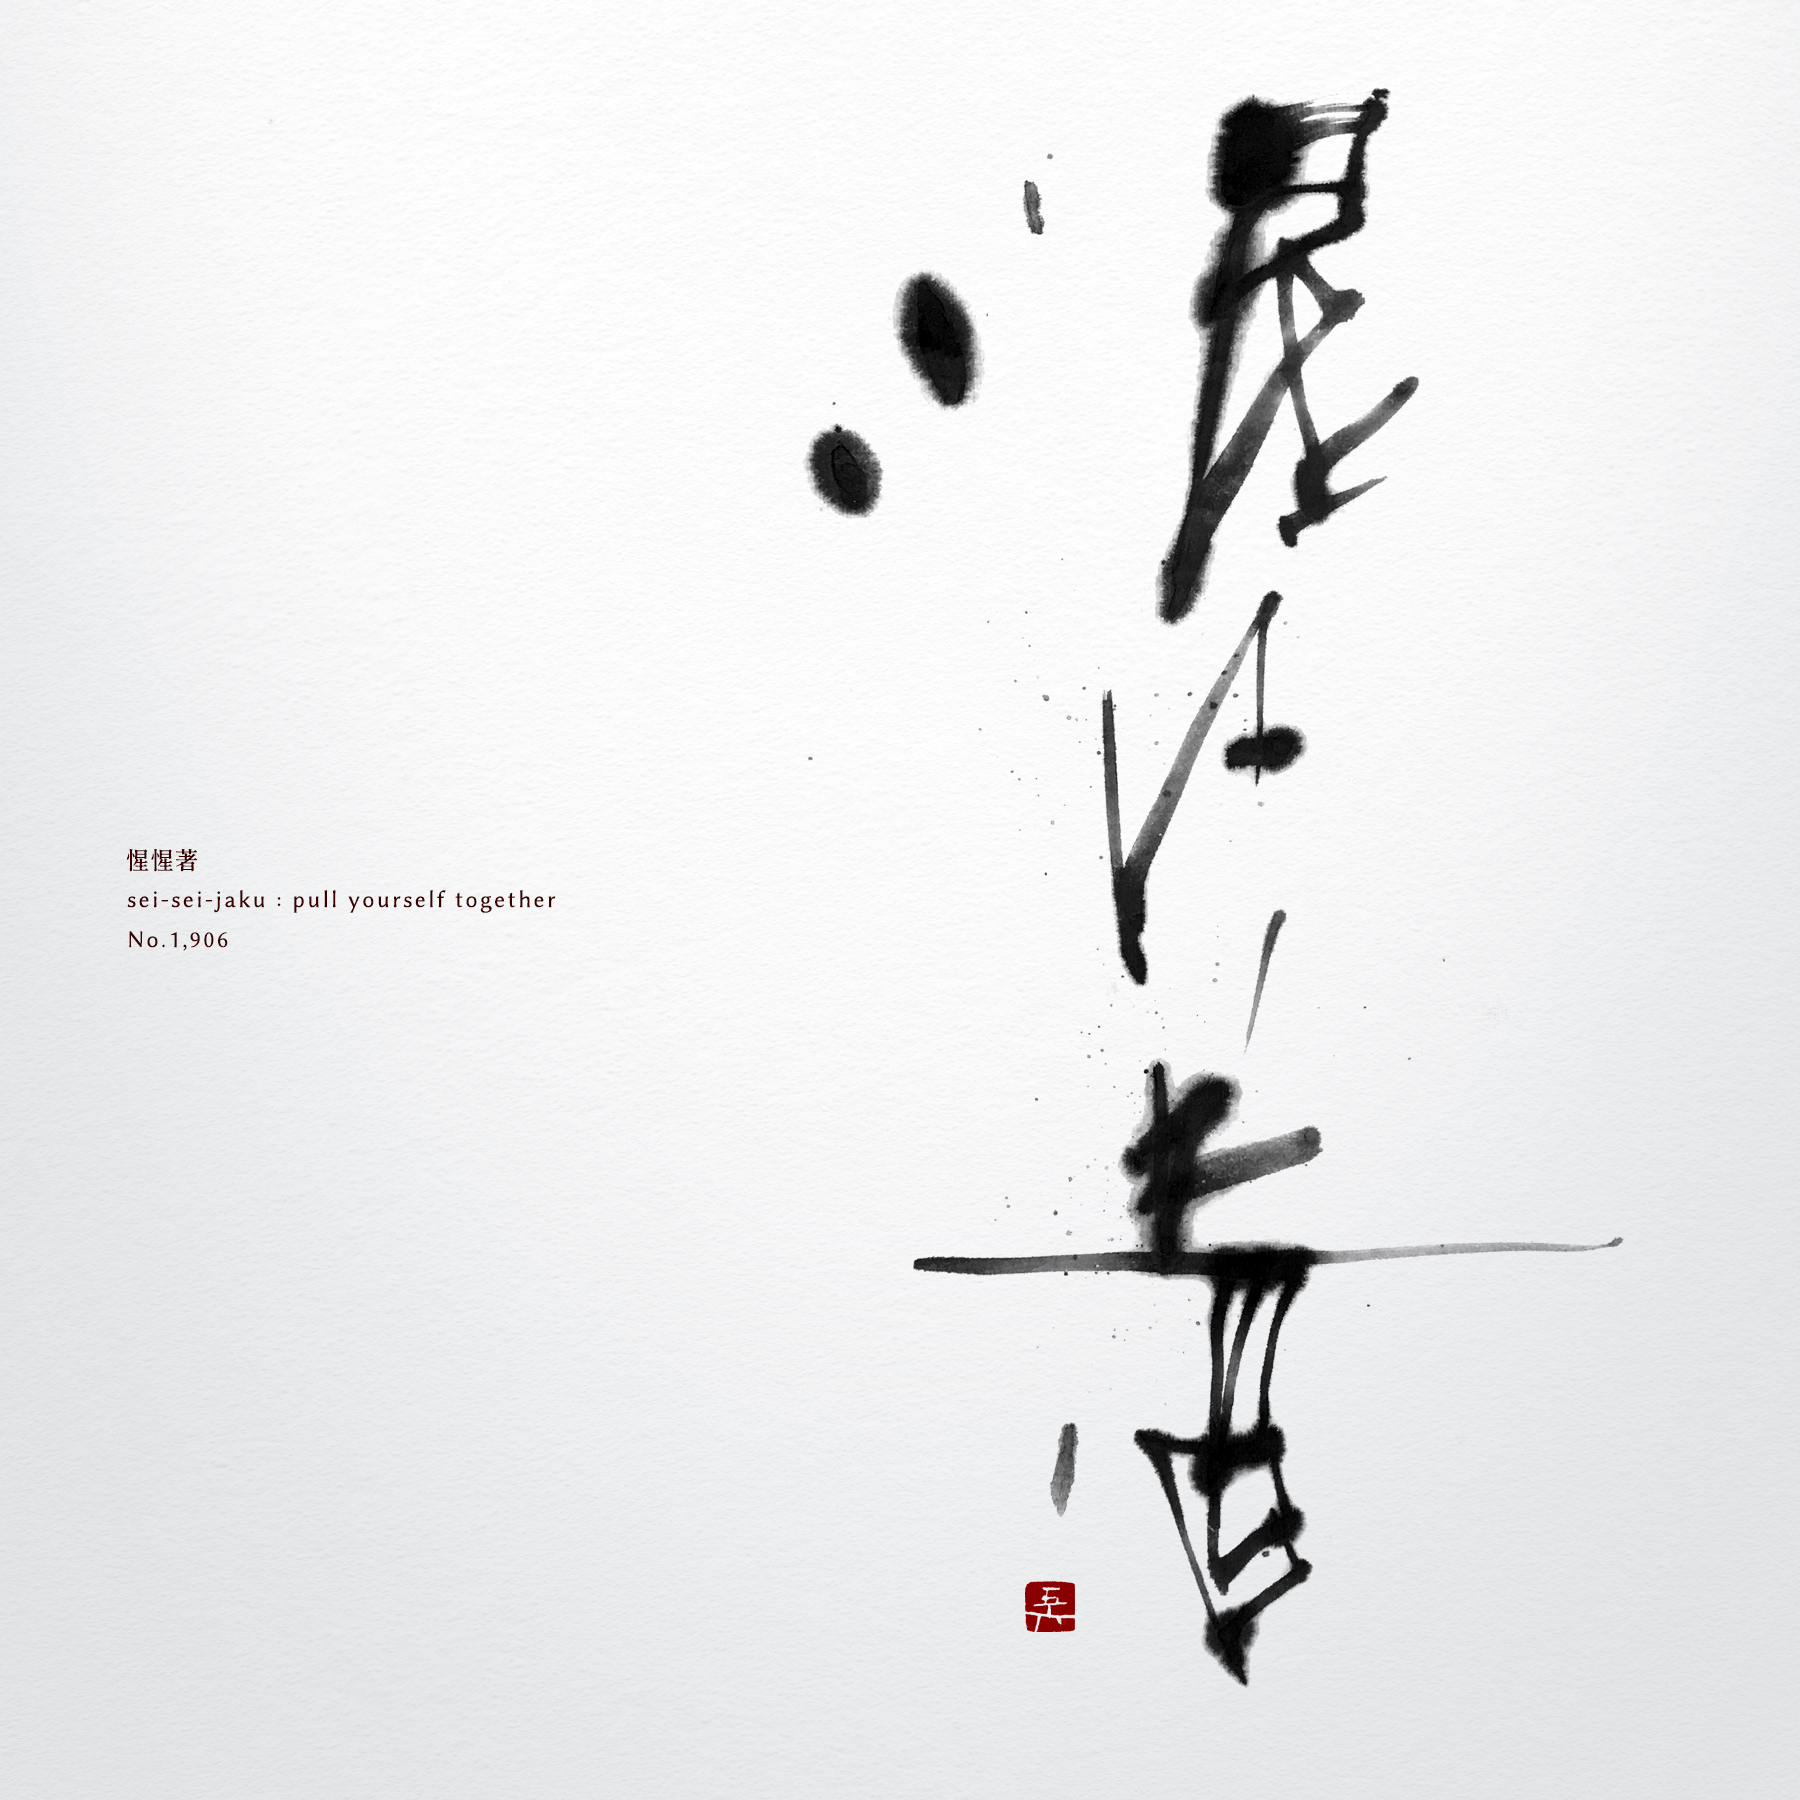 惺々著 | pull yourself together 書道作品 japaneseart japanese calligraphy 書家 田川悟郎 Goroh Tagawa